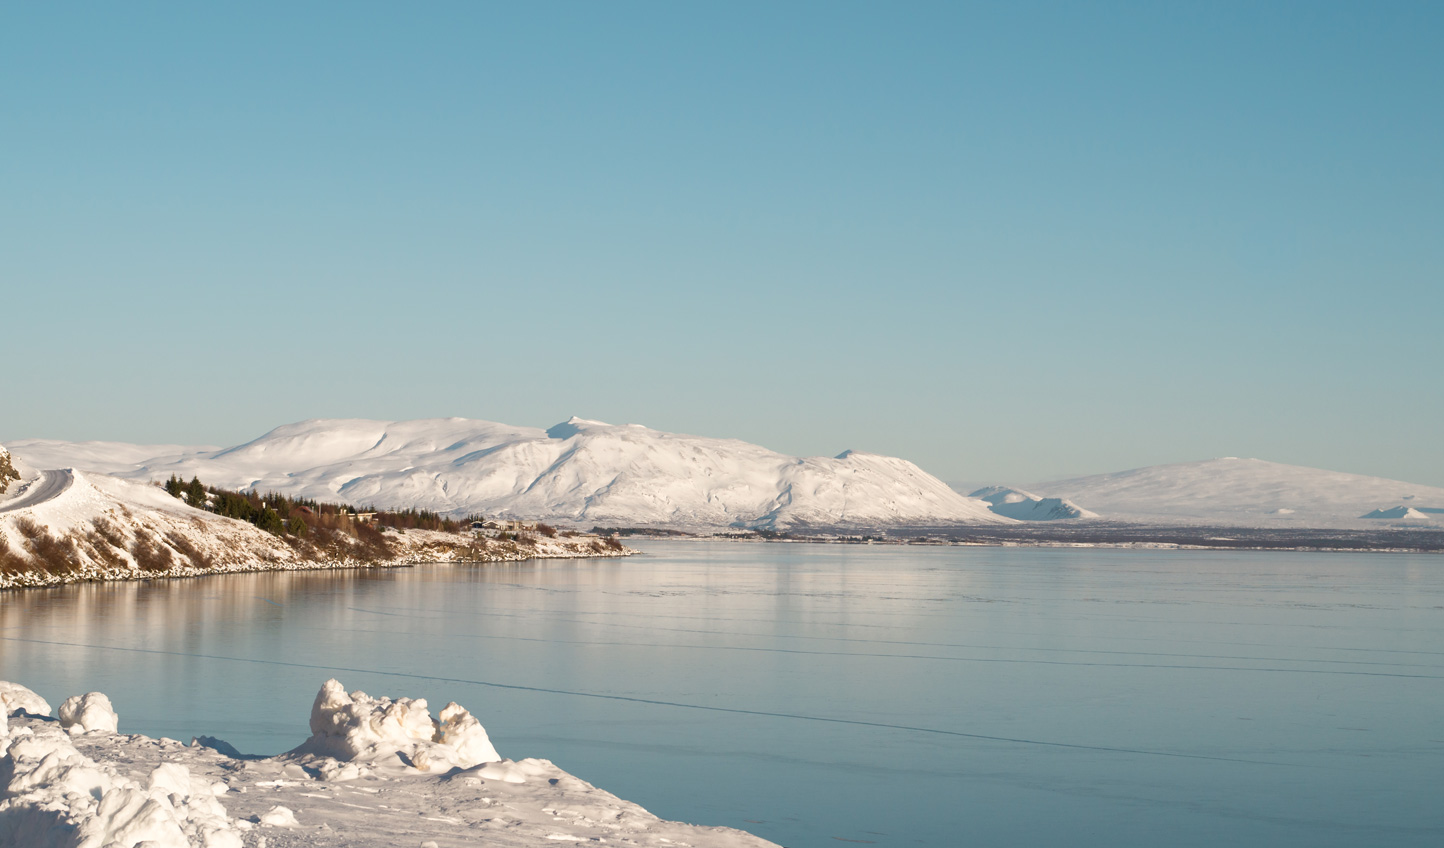 Explore the beauty of Thingvellir